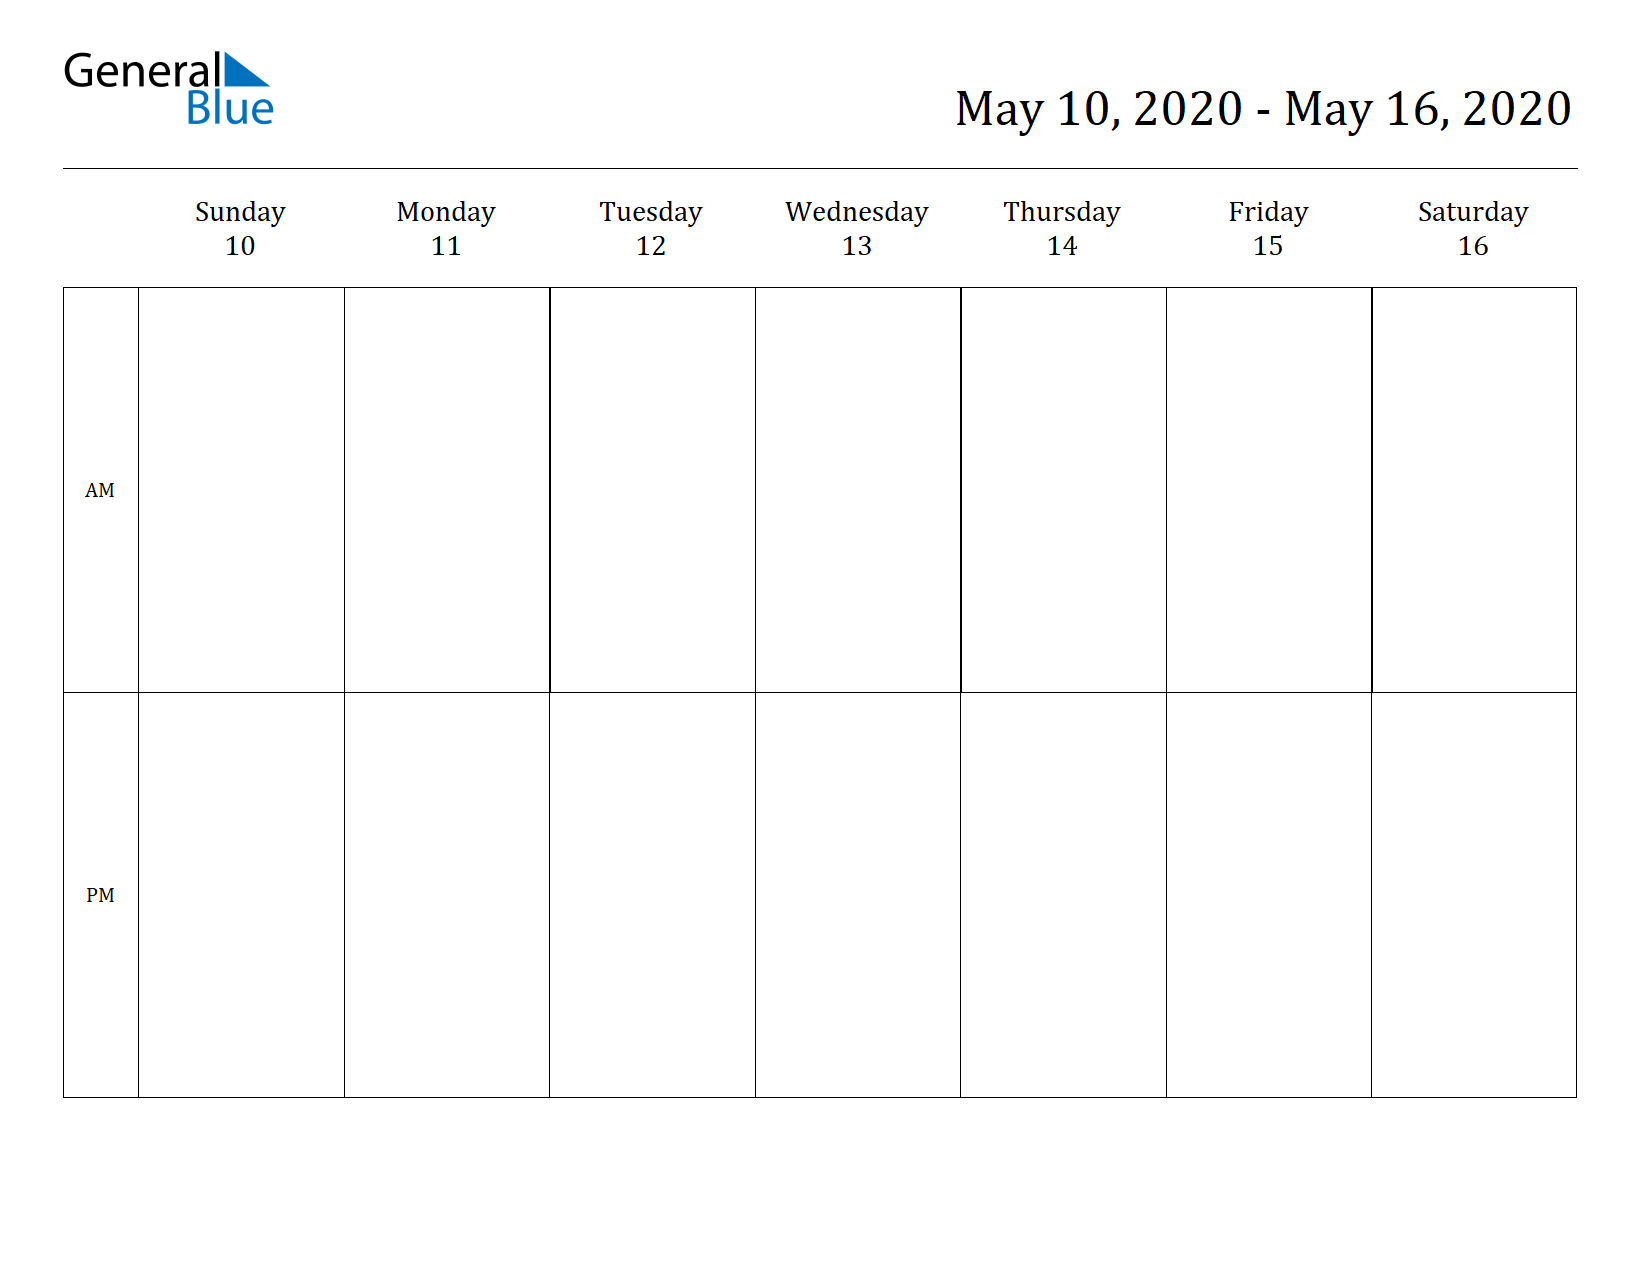 Weekly Calendar for May 10, 2020 to May 16, 2020